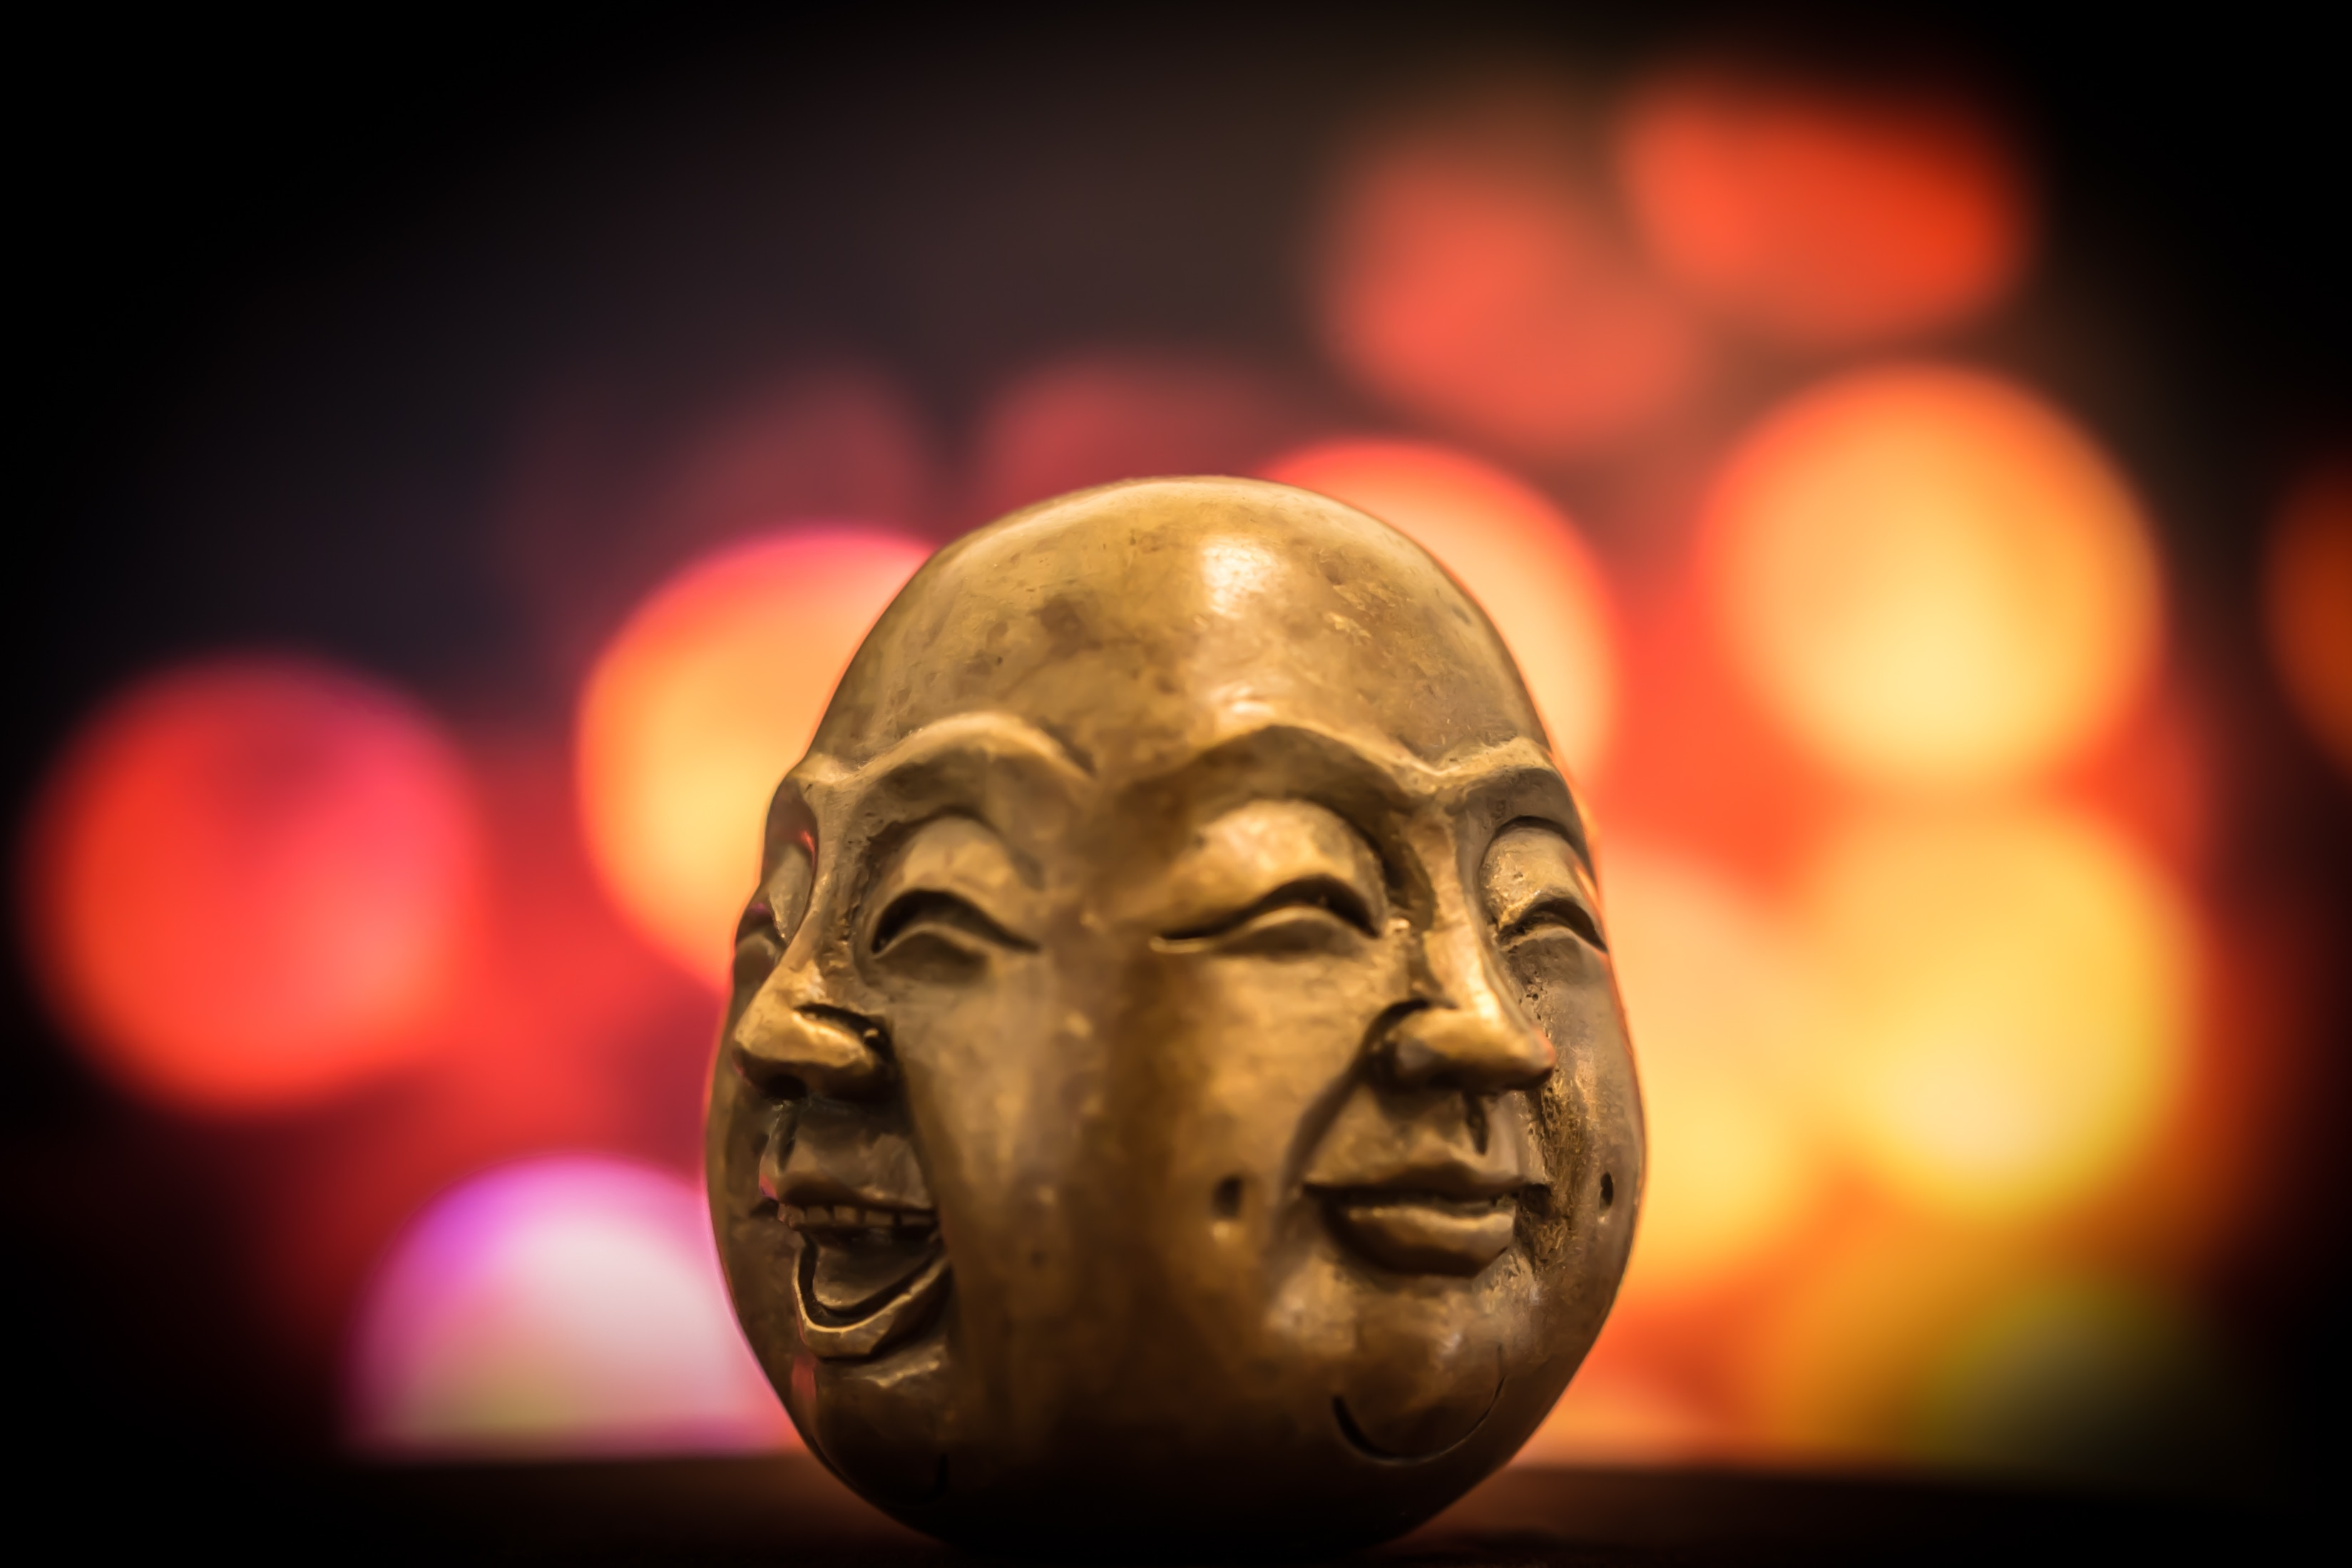 Buddha faces with happy expressions